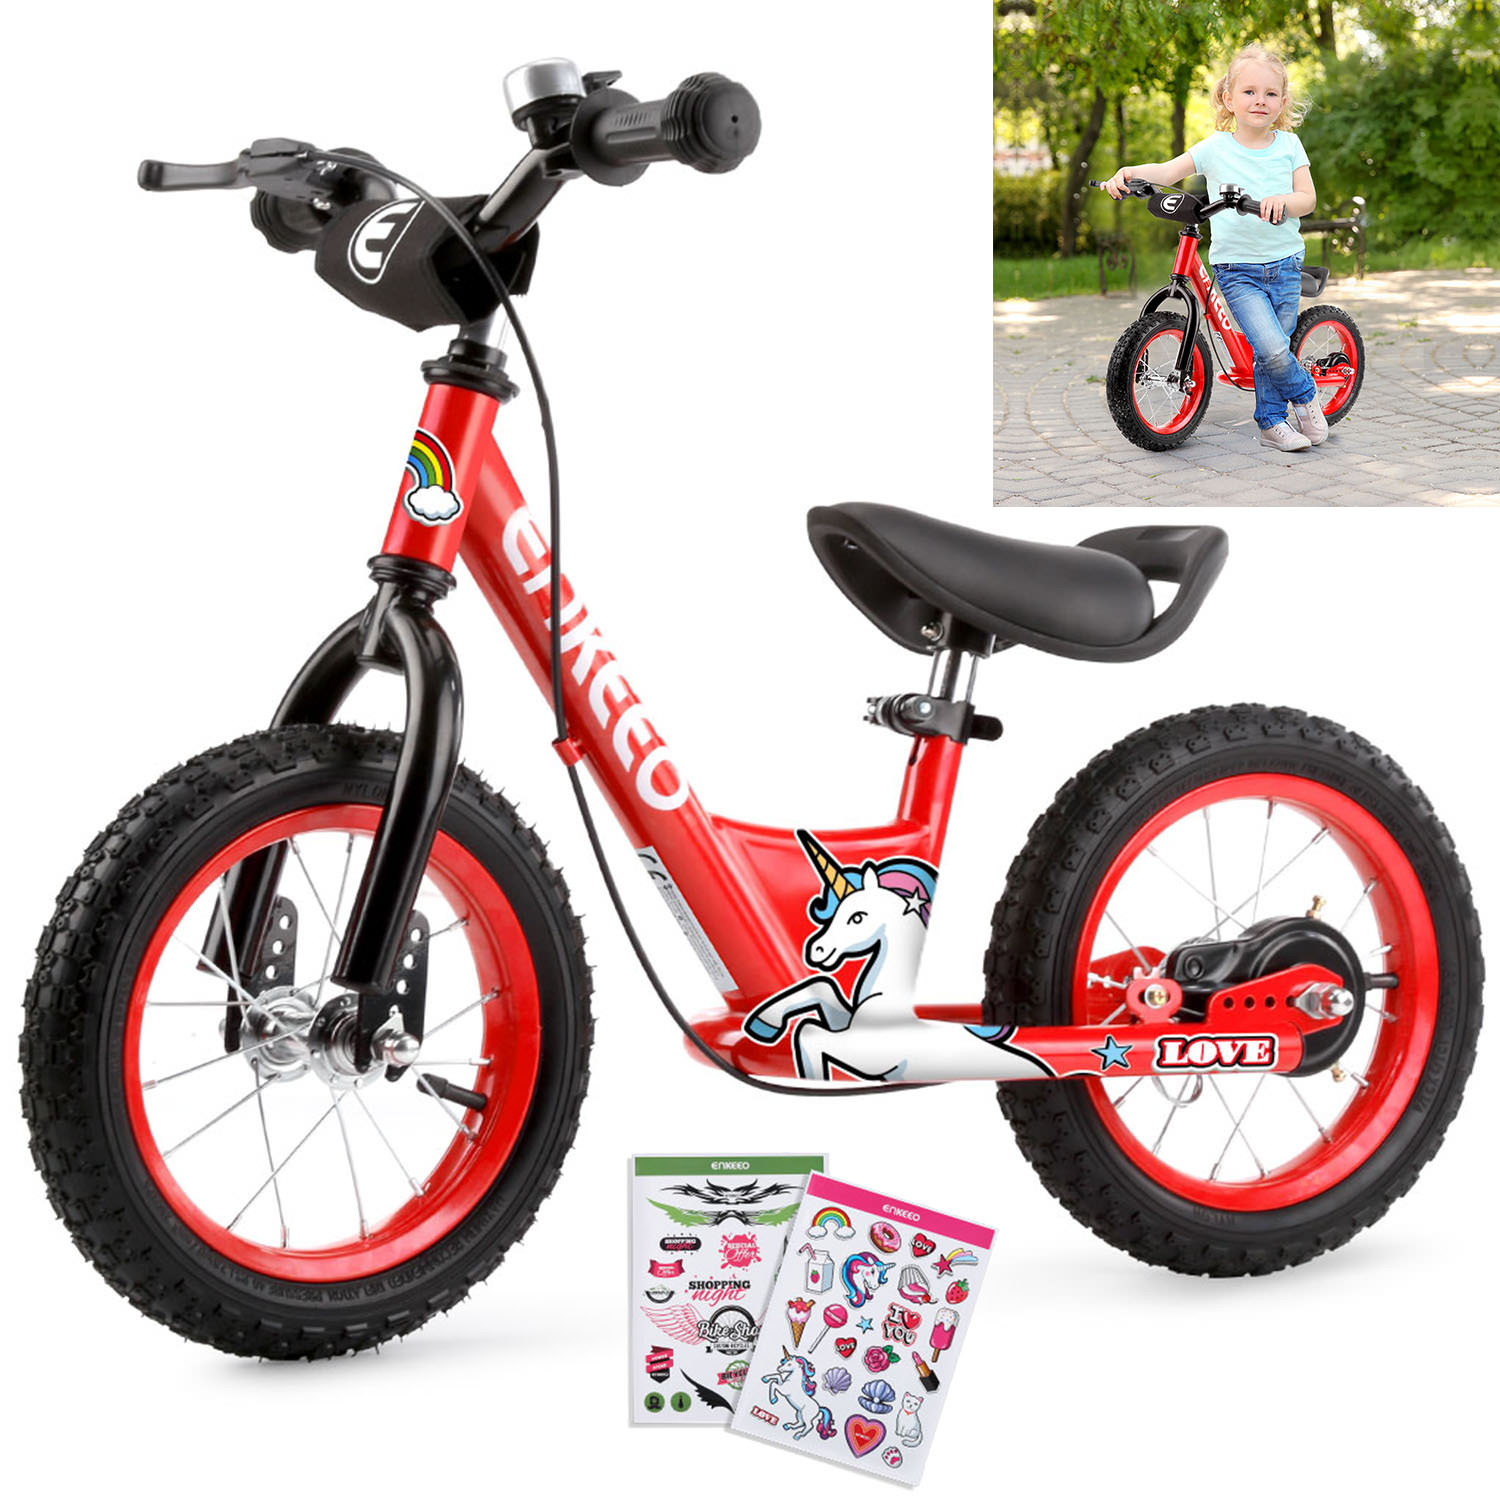 "ENKEEO 14"" Sport Balance Bike No Pedal Walking Bicycle with Carbon Steel Frame, Adjustable Handlebar and Seat, 110lbs Capacity for Kids Toddlers Ages 2 to 6 Years Old"